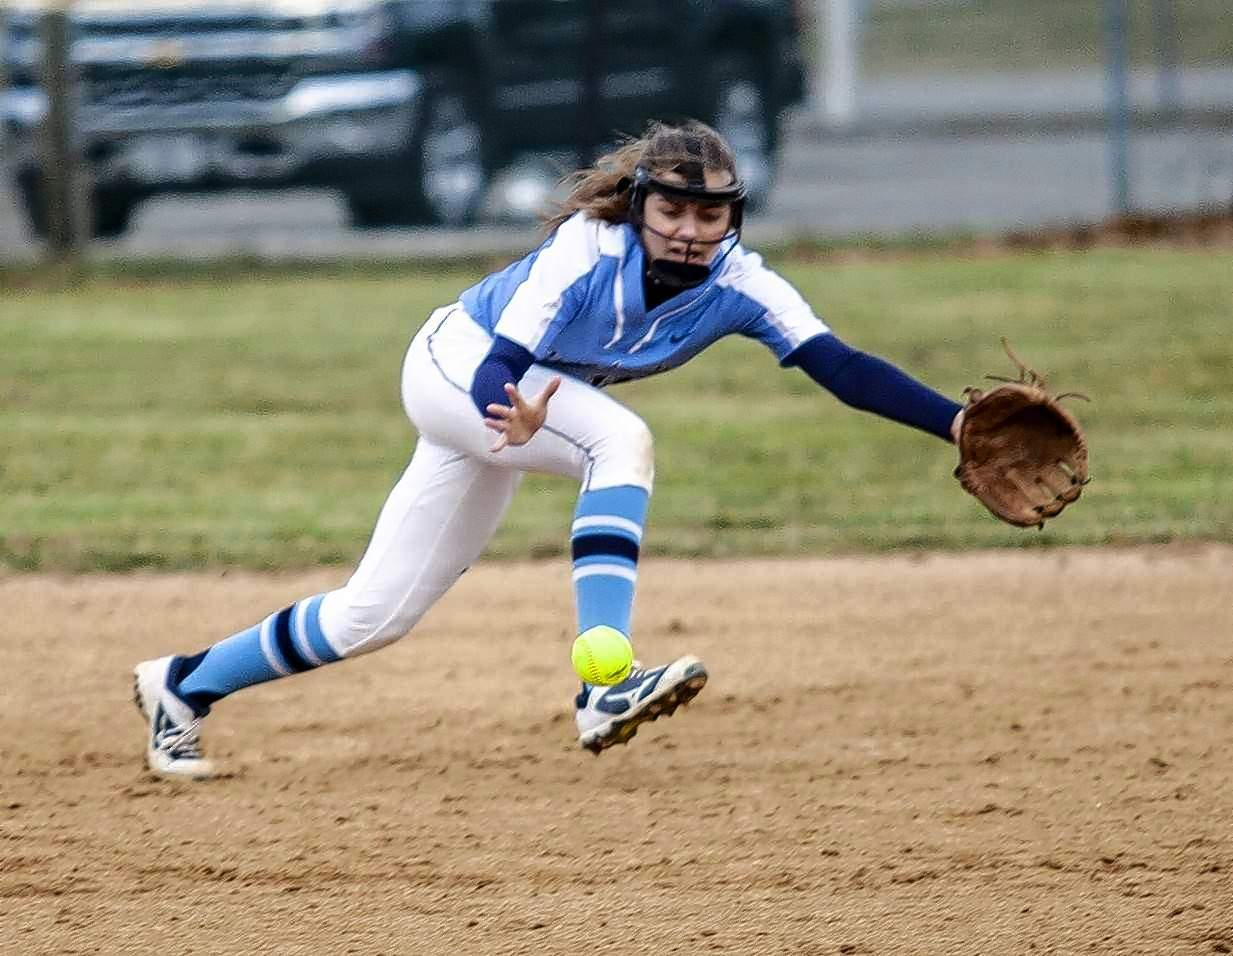 Lady Panthers shortstop Megan Engelhardt dives for a ground ball in game action Wednesday with Waltonville. She came up just short on this attempt.